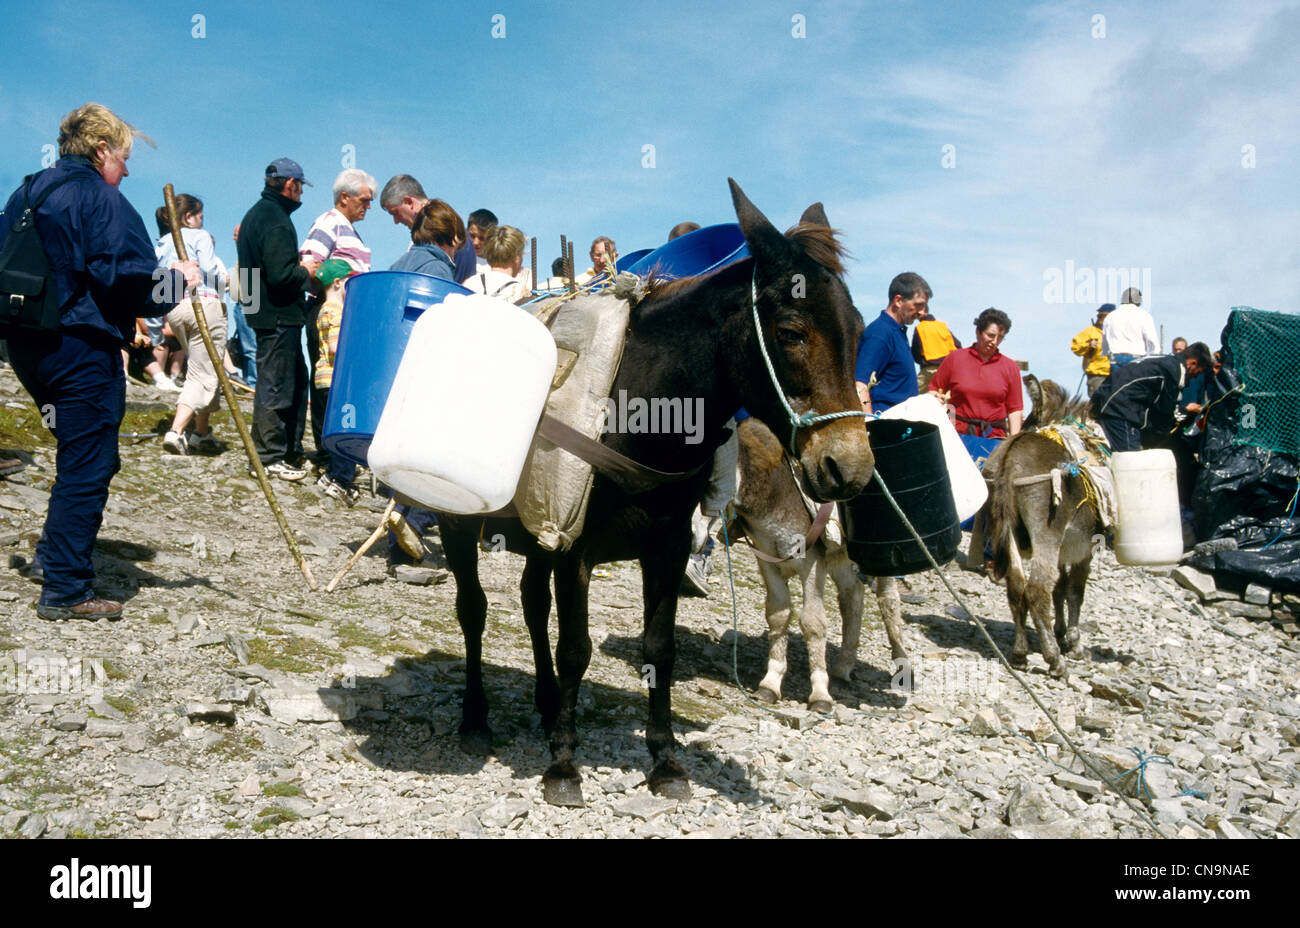 Donkeys carry supplies to the summit of Croagh Patrick, Ireland's celebrated  pilgrimage on 'Reek Sunday' - Stock Image